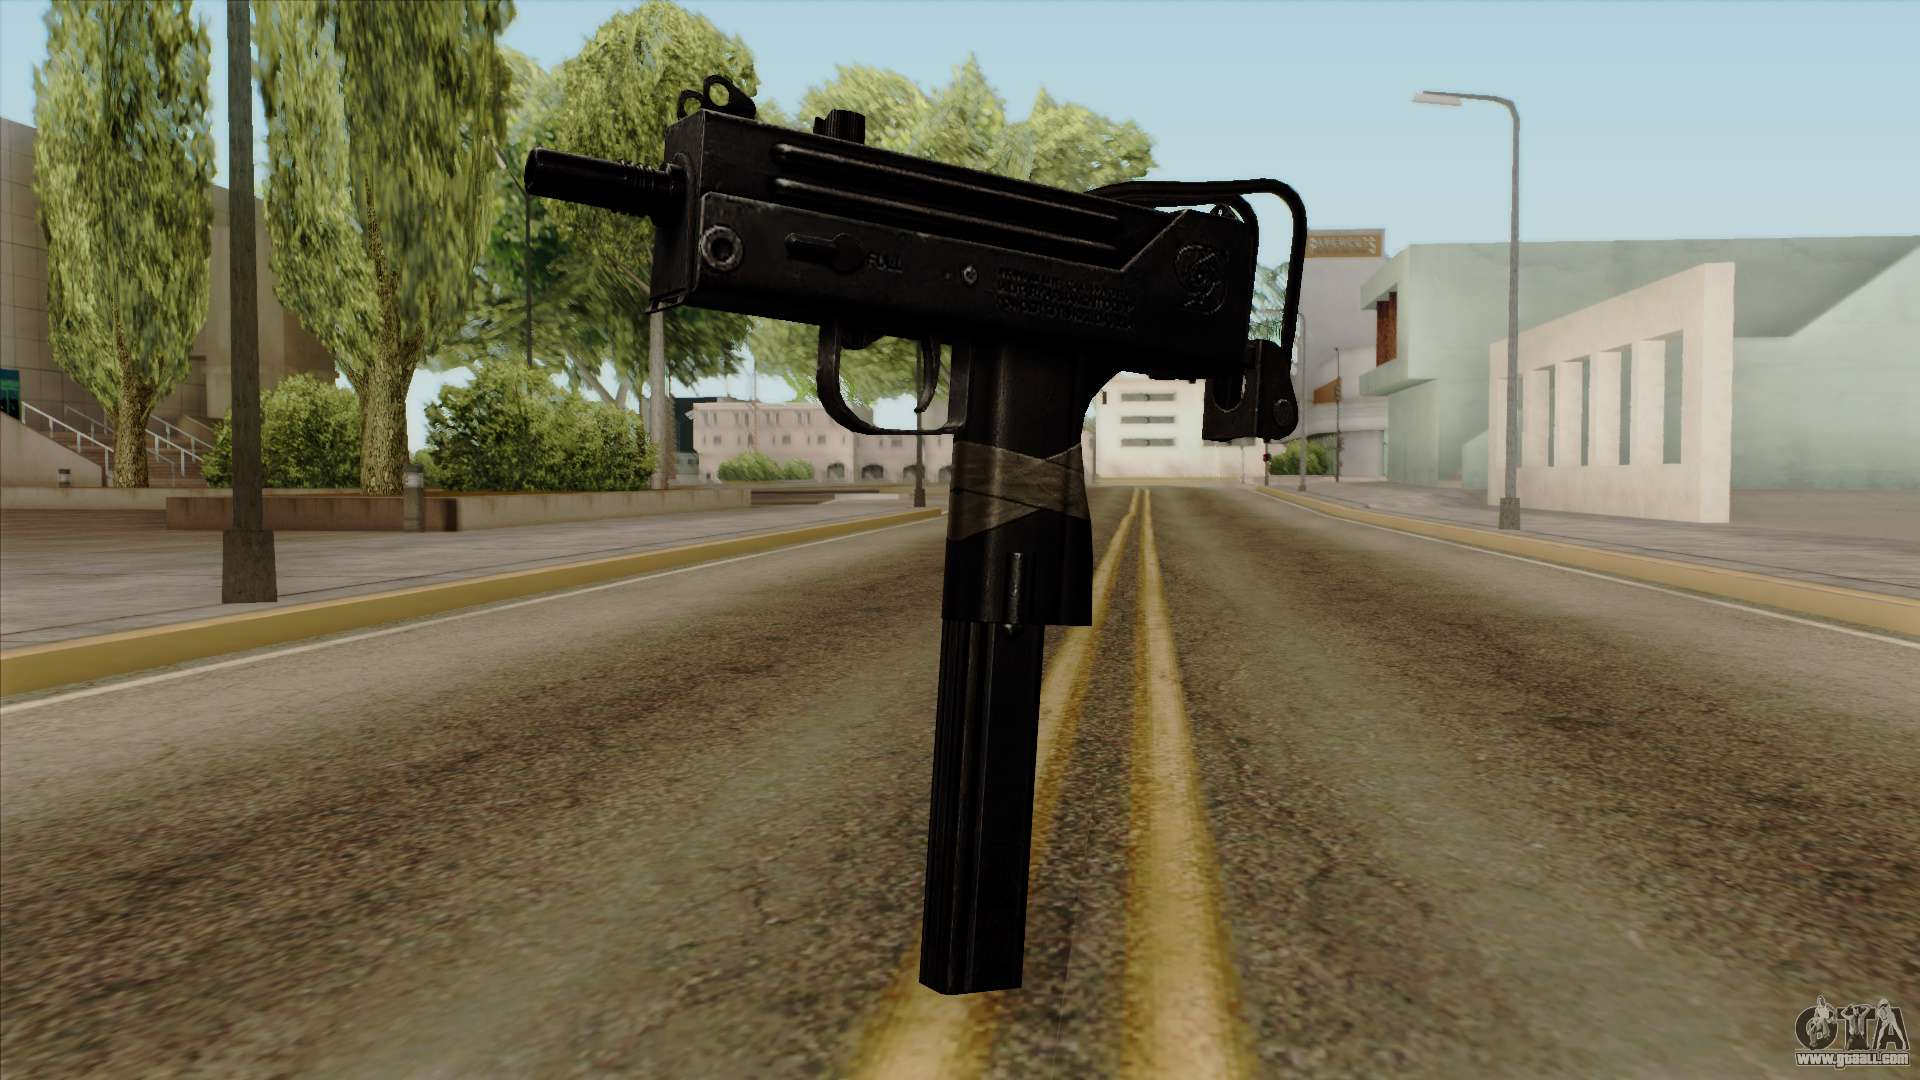 Original Hd Micro Smg For Gta San Andreas